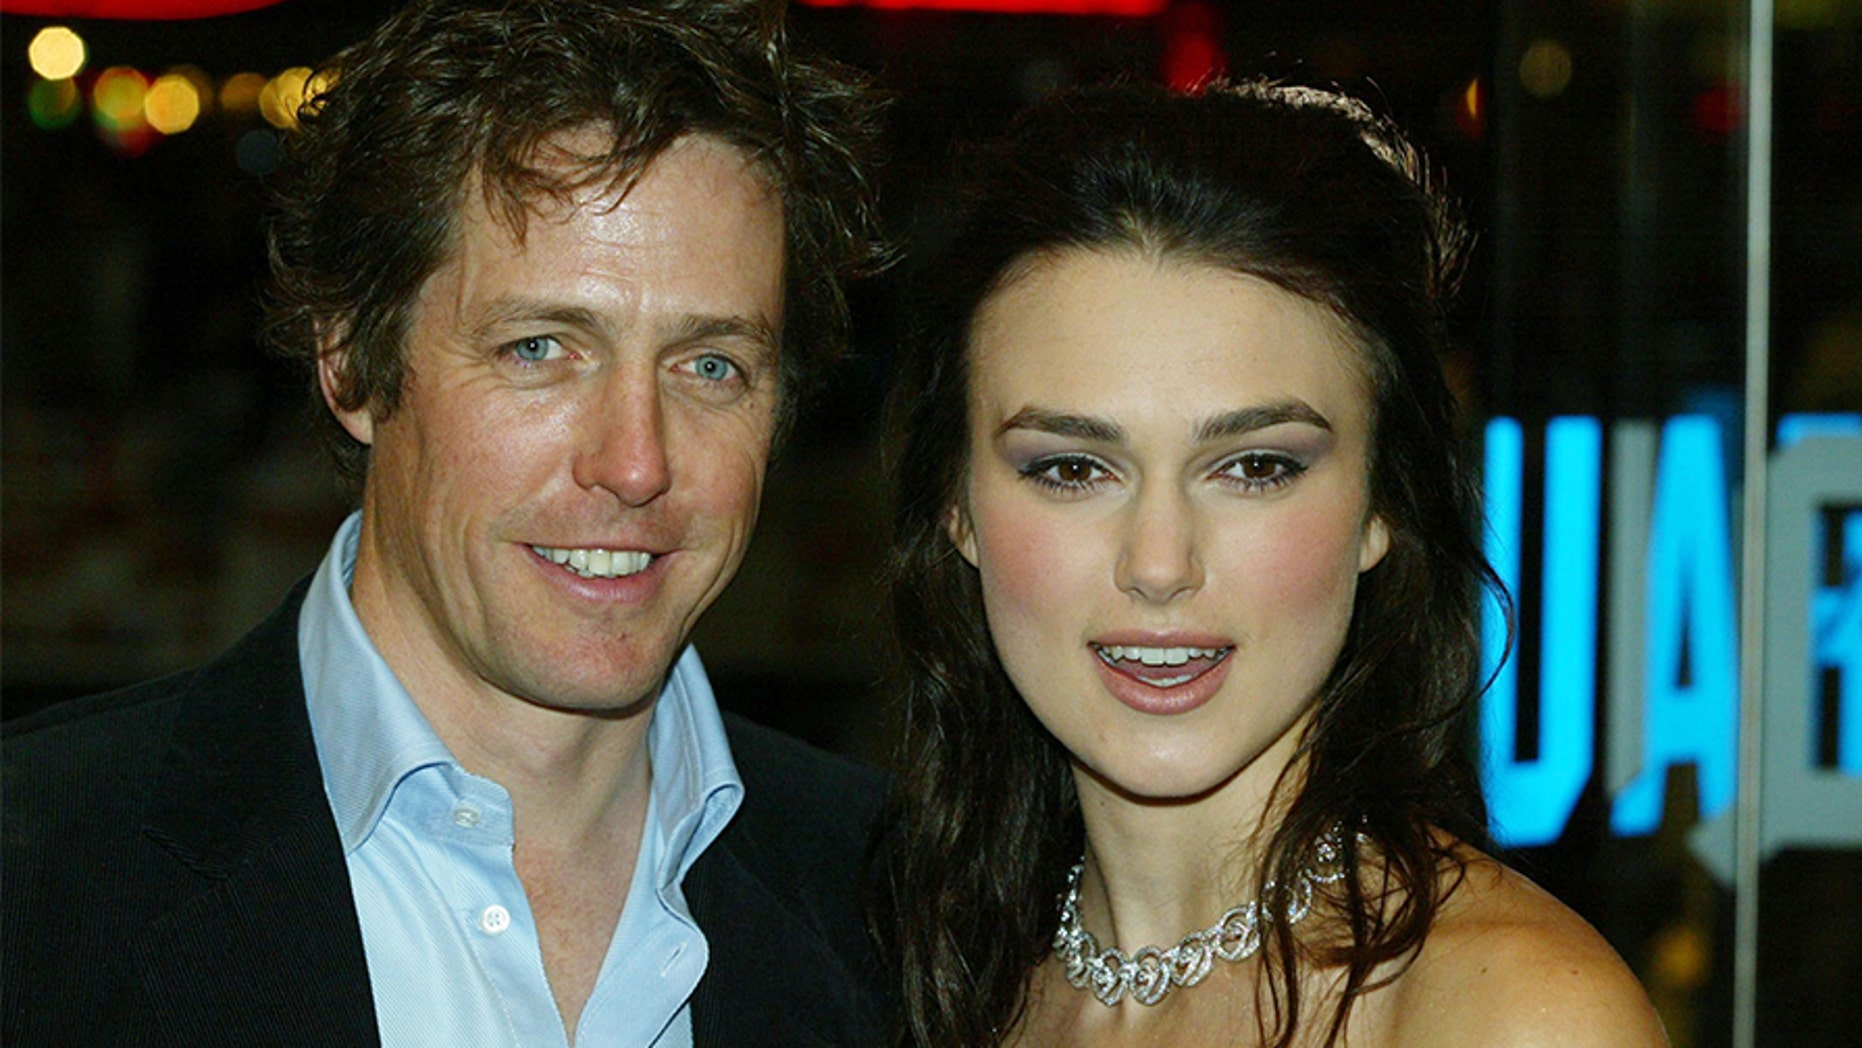 """Actors Hugh Grant and Kiera Knightley attend the UK charity film premiere of """"Love Actually"""" at The Odeon Leicester Square on November 16, 2003 in London."""